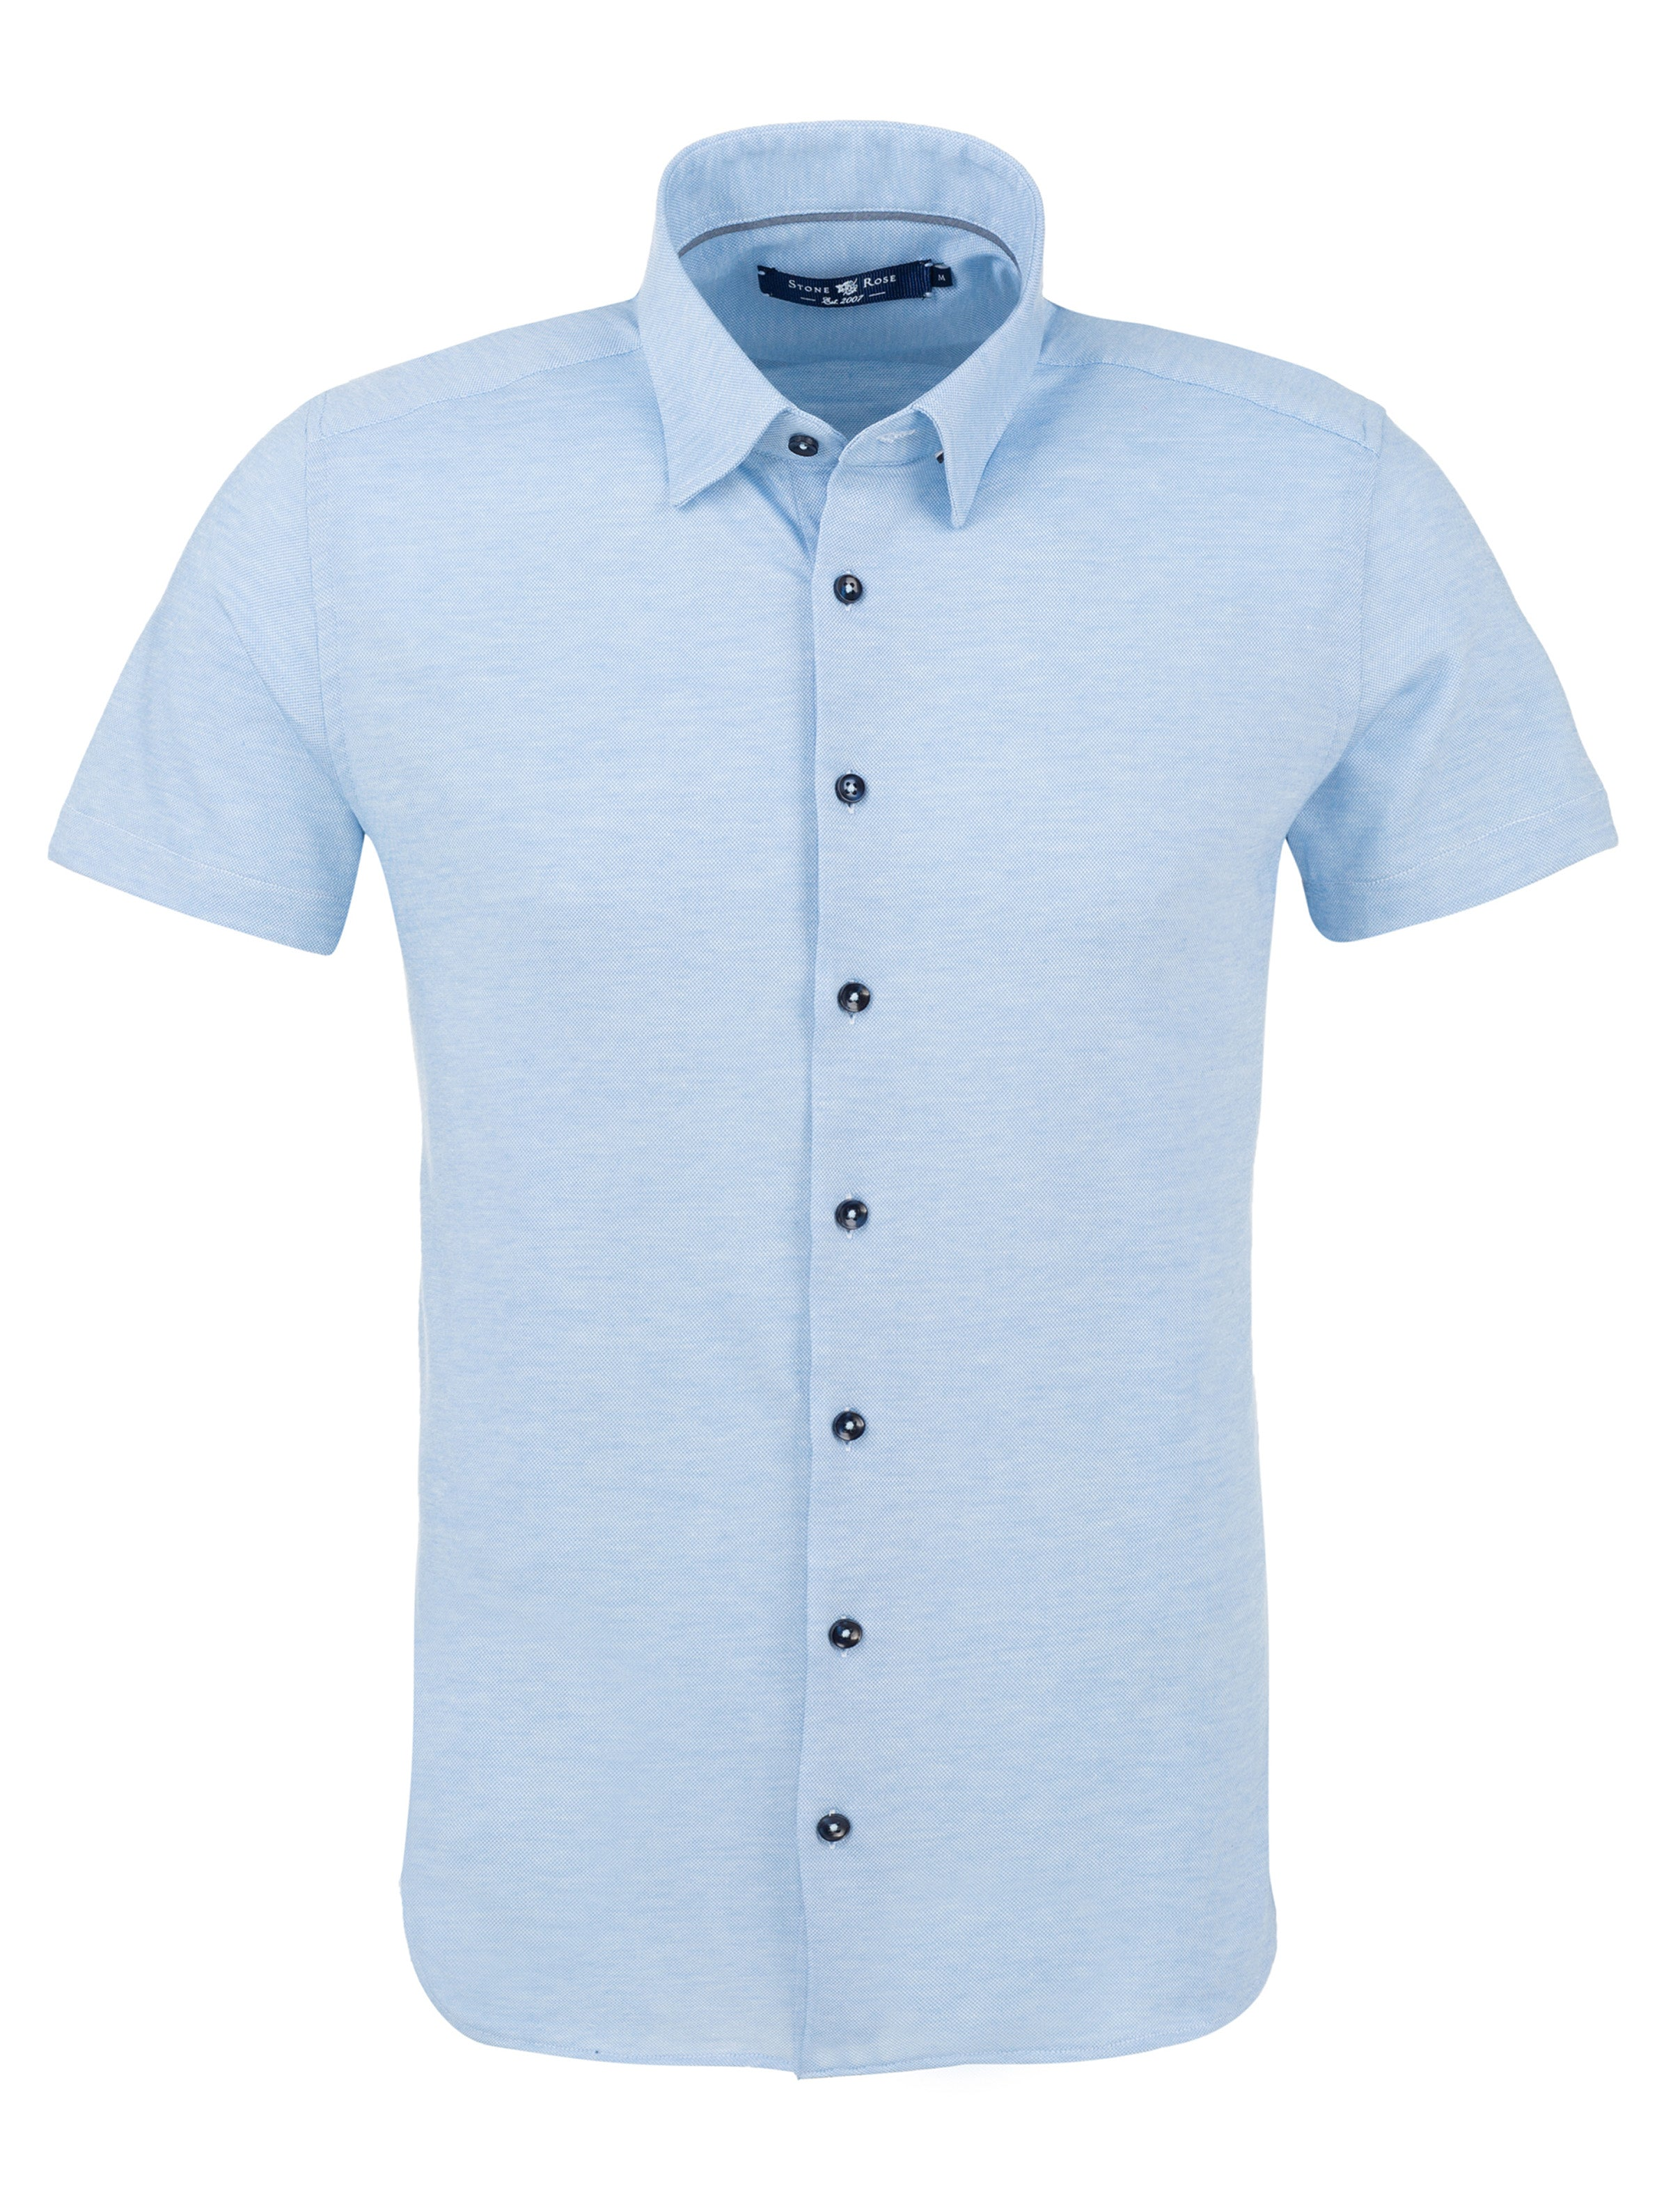 Light Blue Pique Knit Short Sleeve Shirt